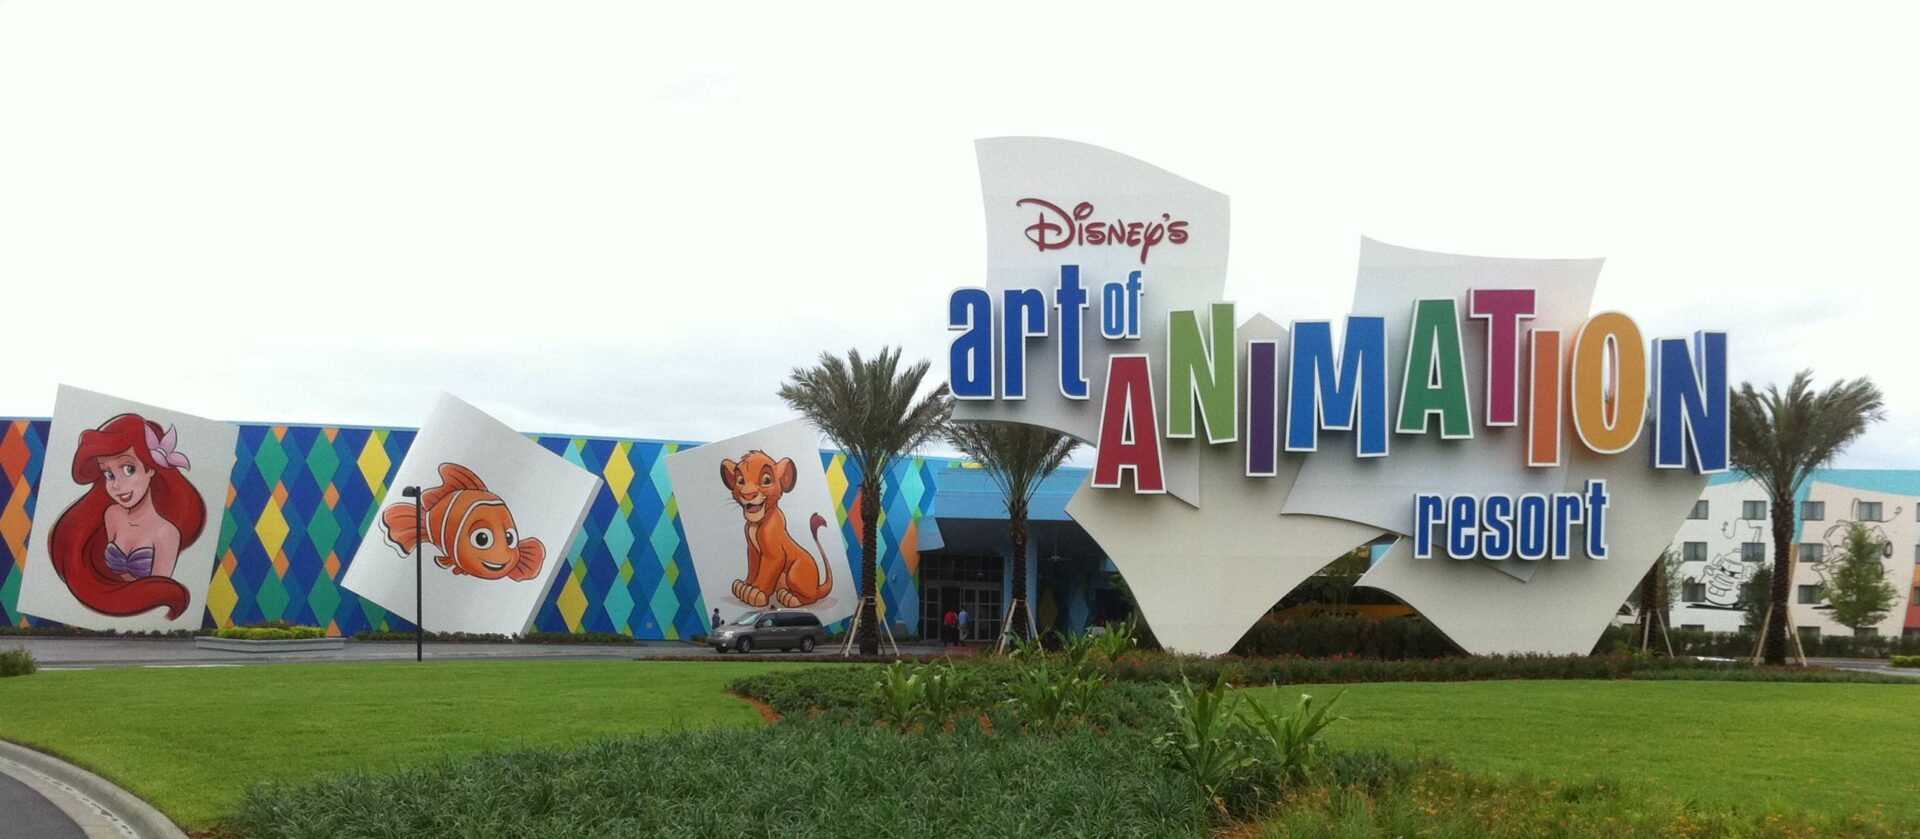 DISNEY'S ART OF ANIMATION Disney's Art of Animation #2: From Mickey Mouse, To He